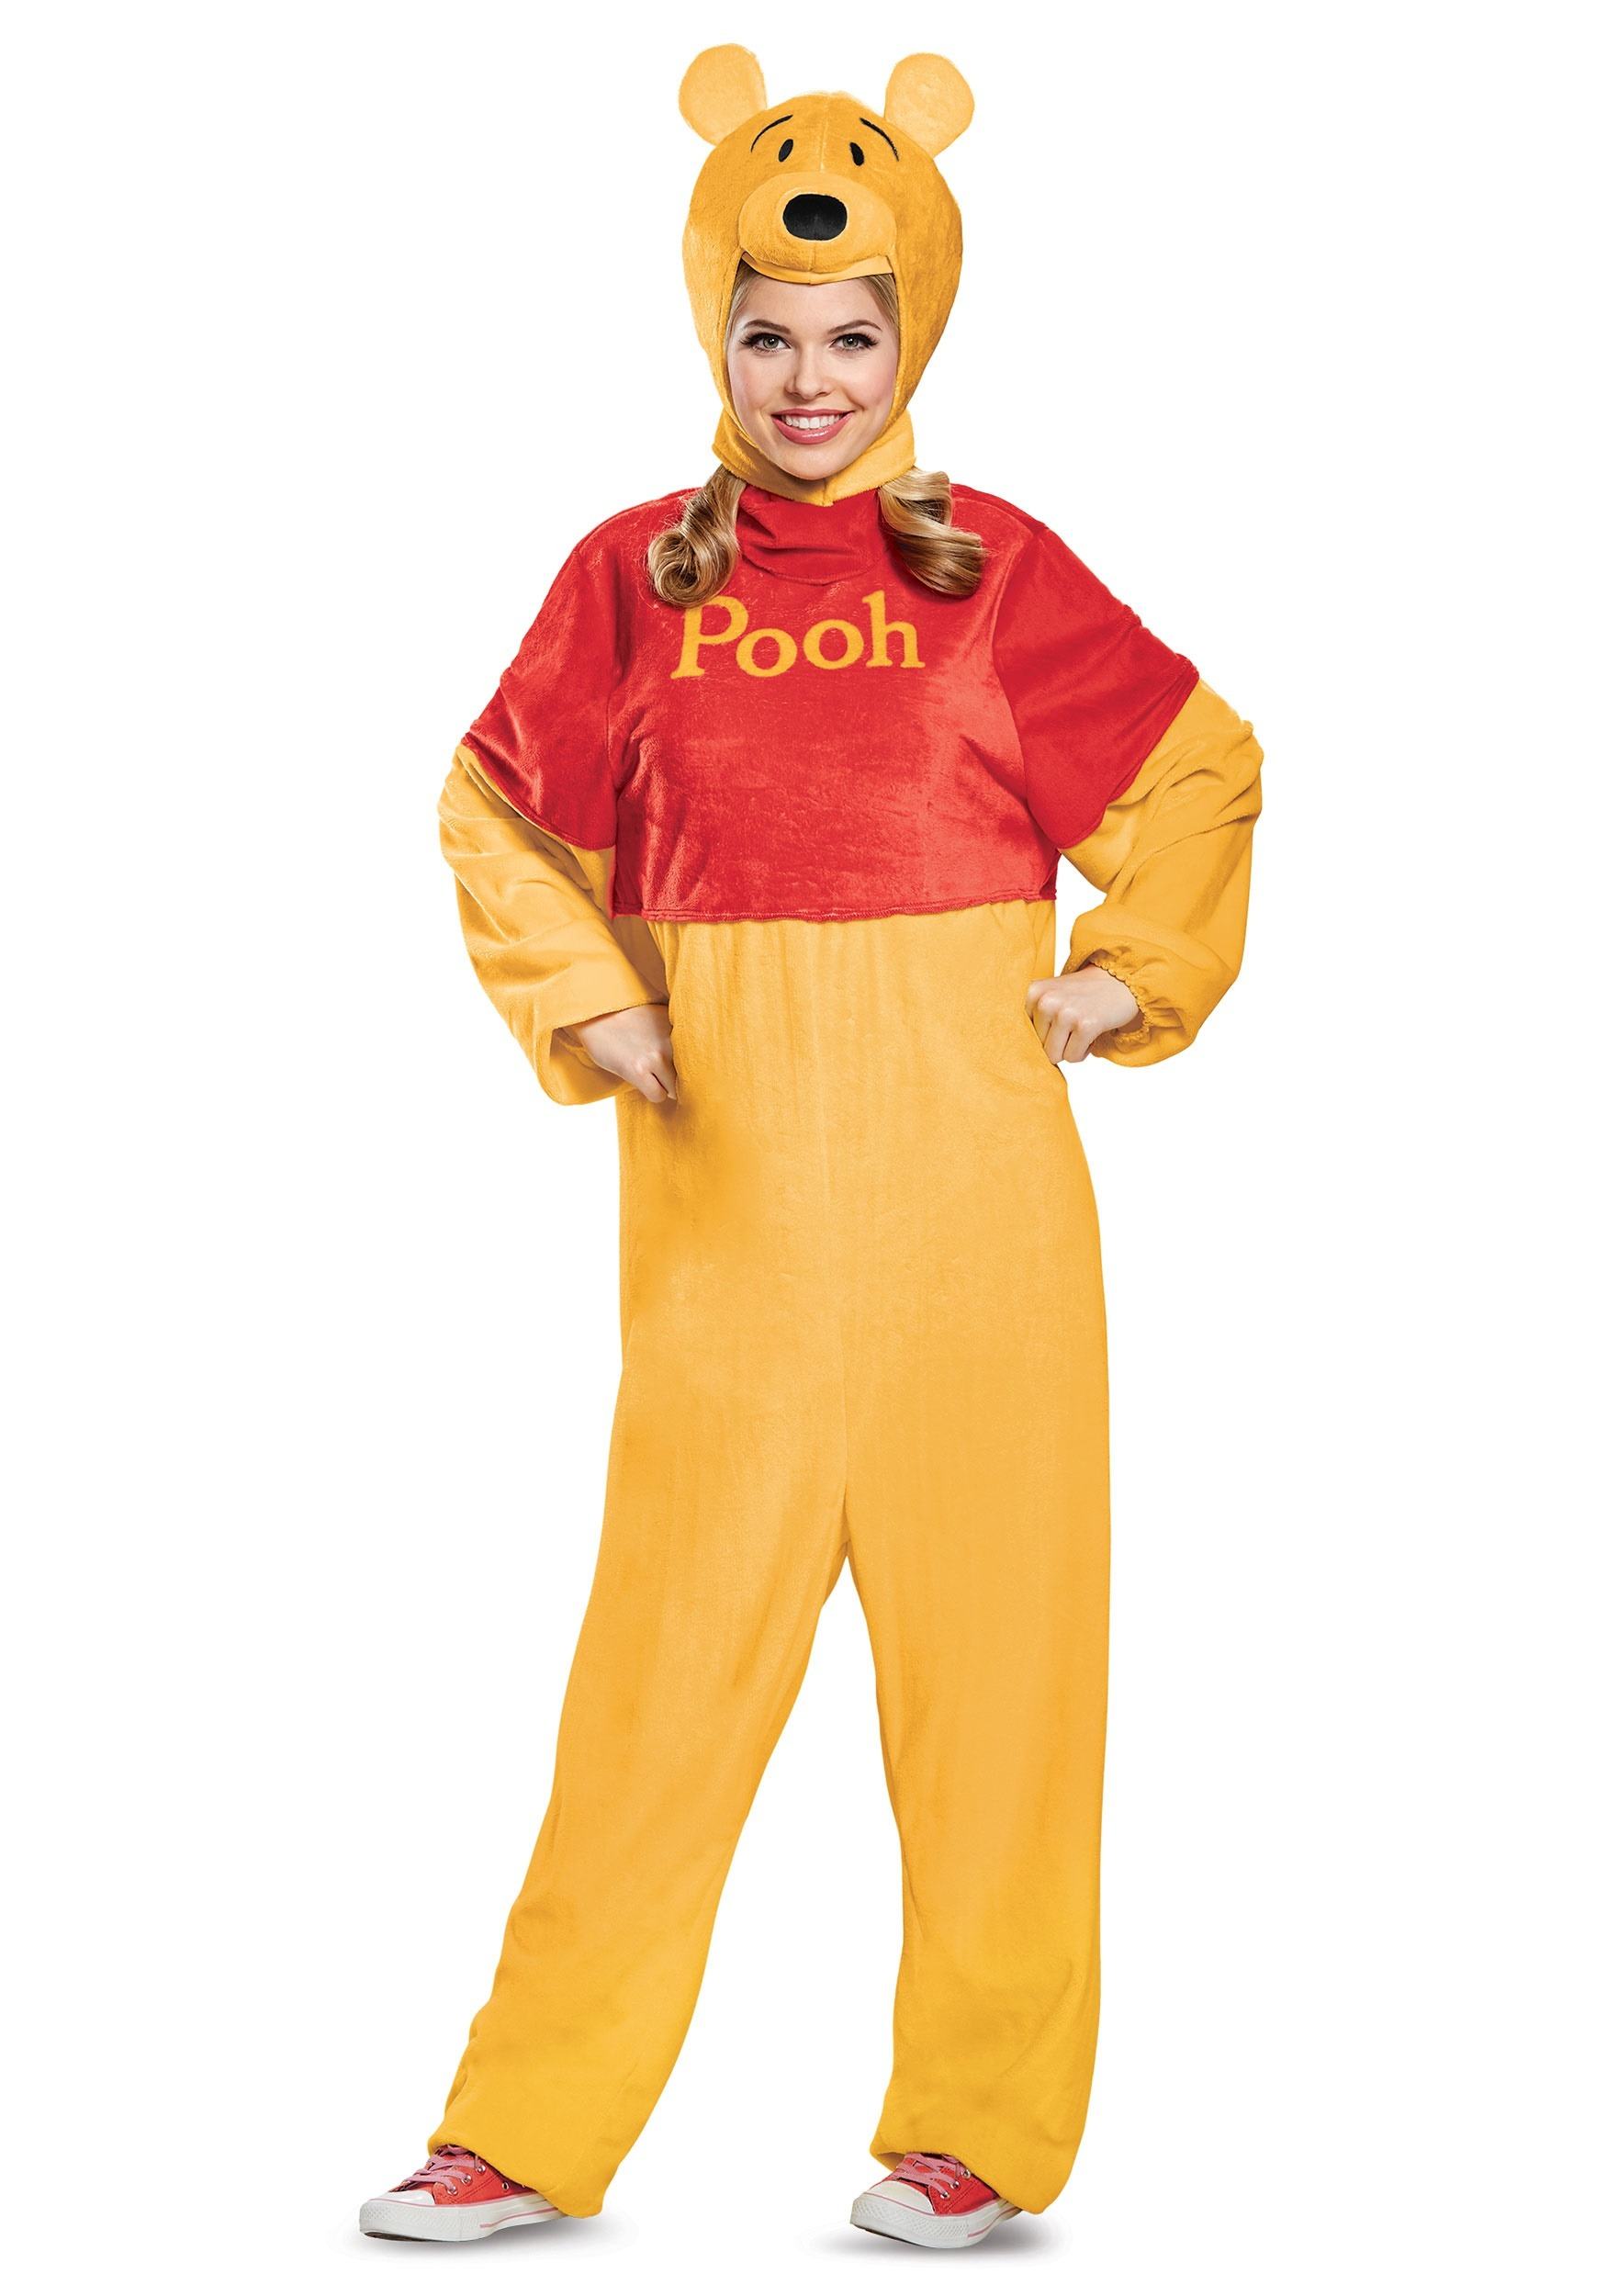 6ddb30f141bb Winnie the Pooh Deluxe Adult Costume Winnie the Pooh Deluxe Adult Costume  ...